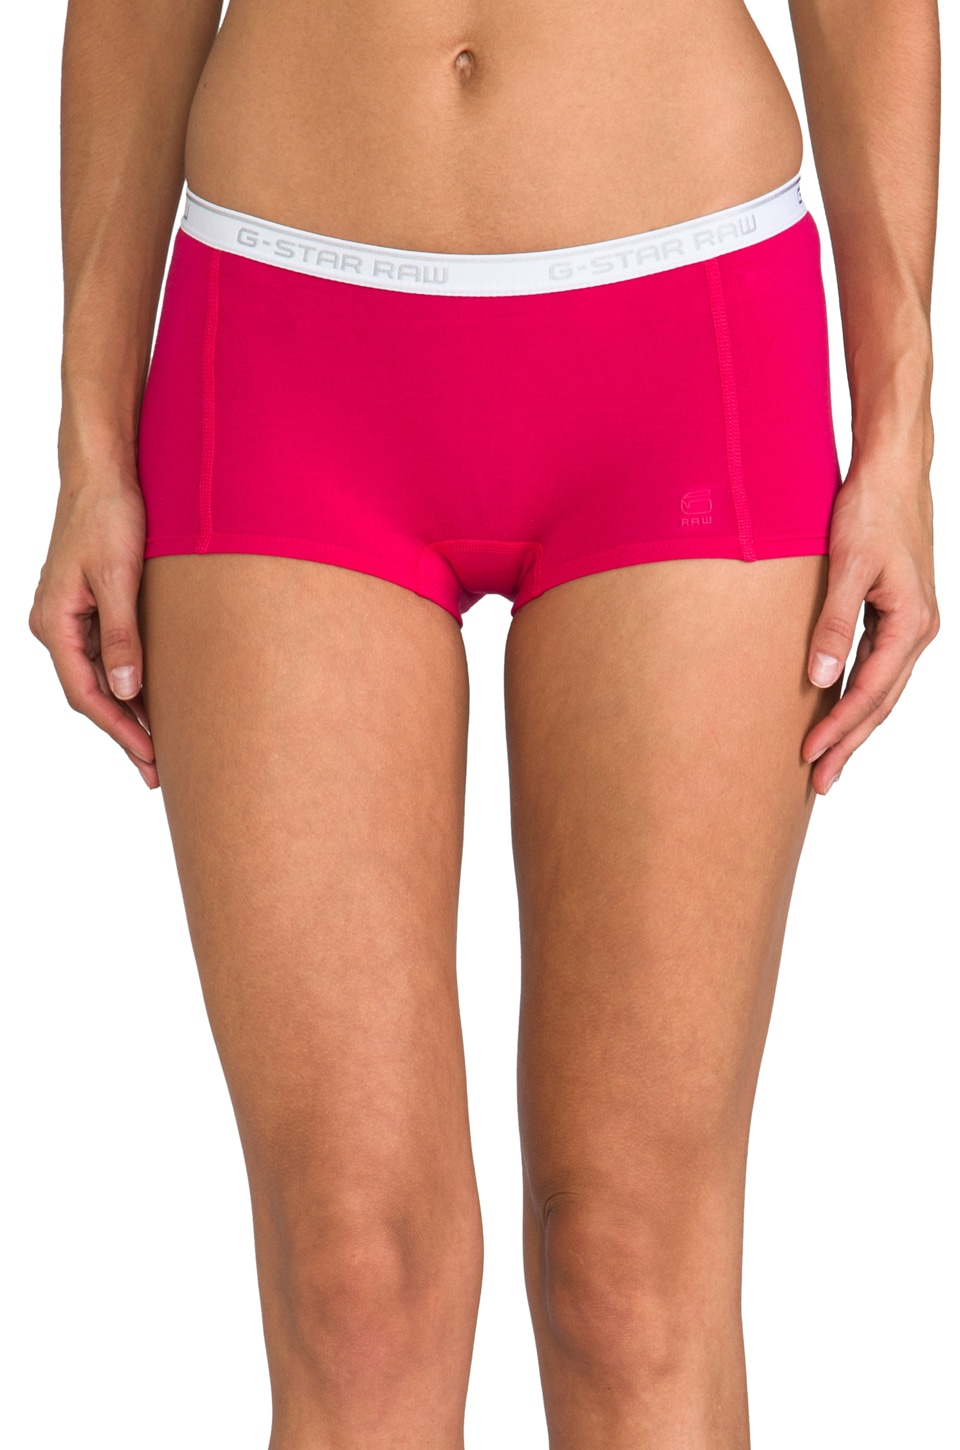 G-Star Sport Brief in Magenta